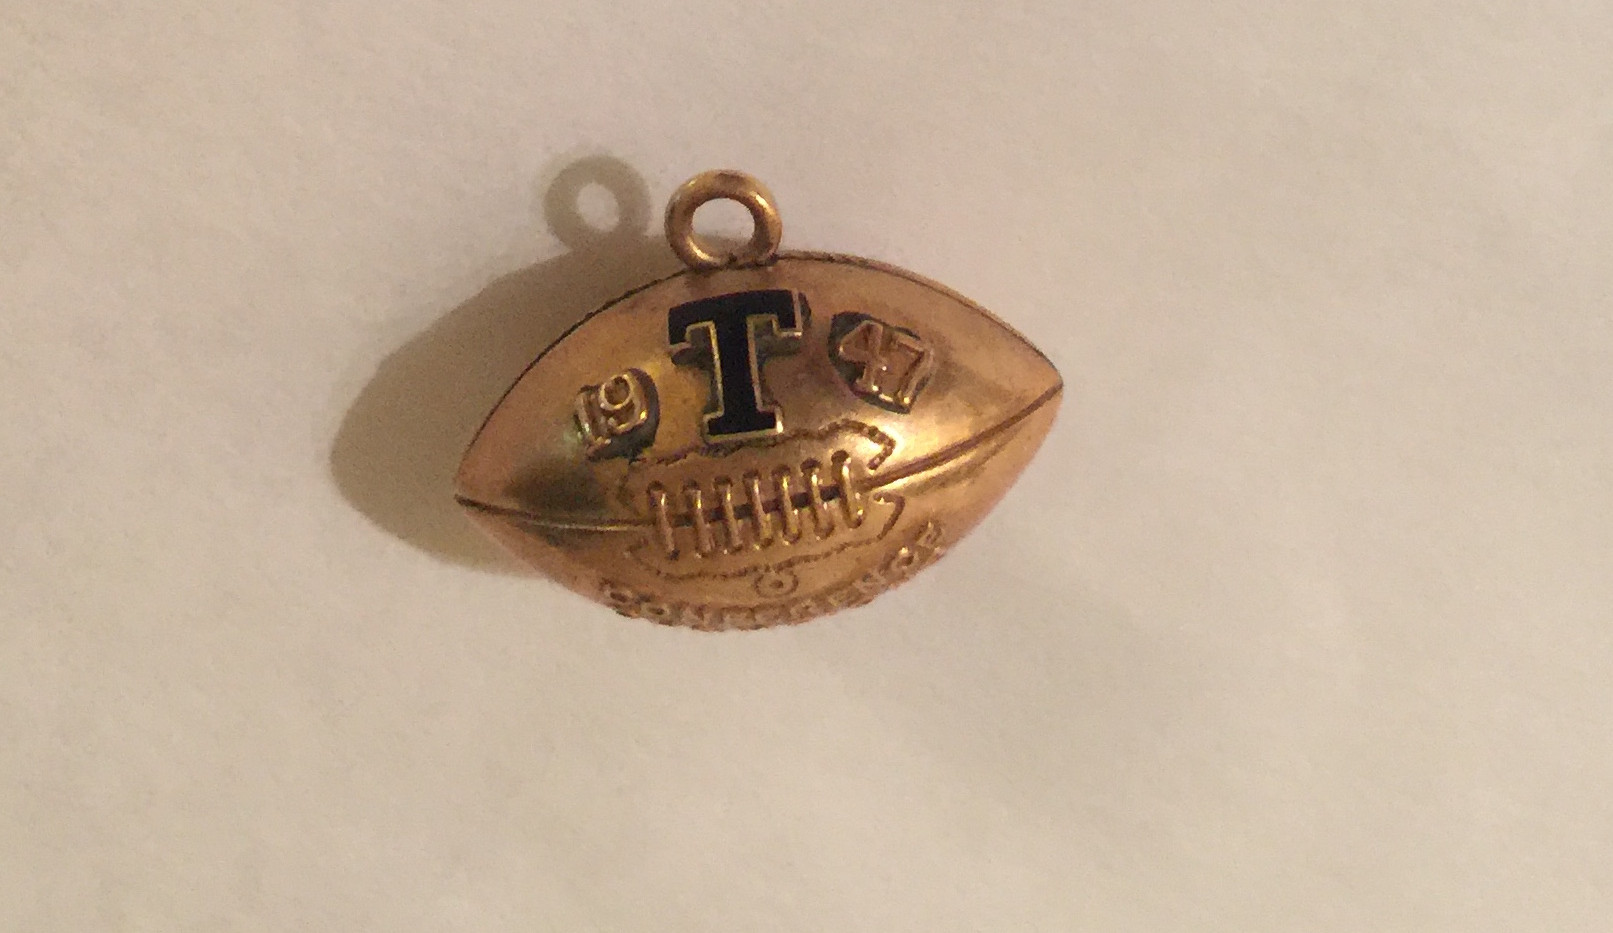 1947 Conference Champions 10Kt Charm.jpg